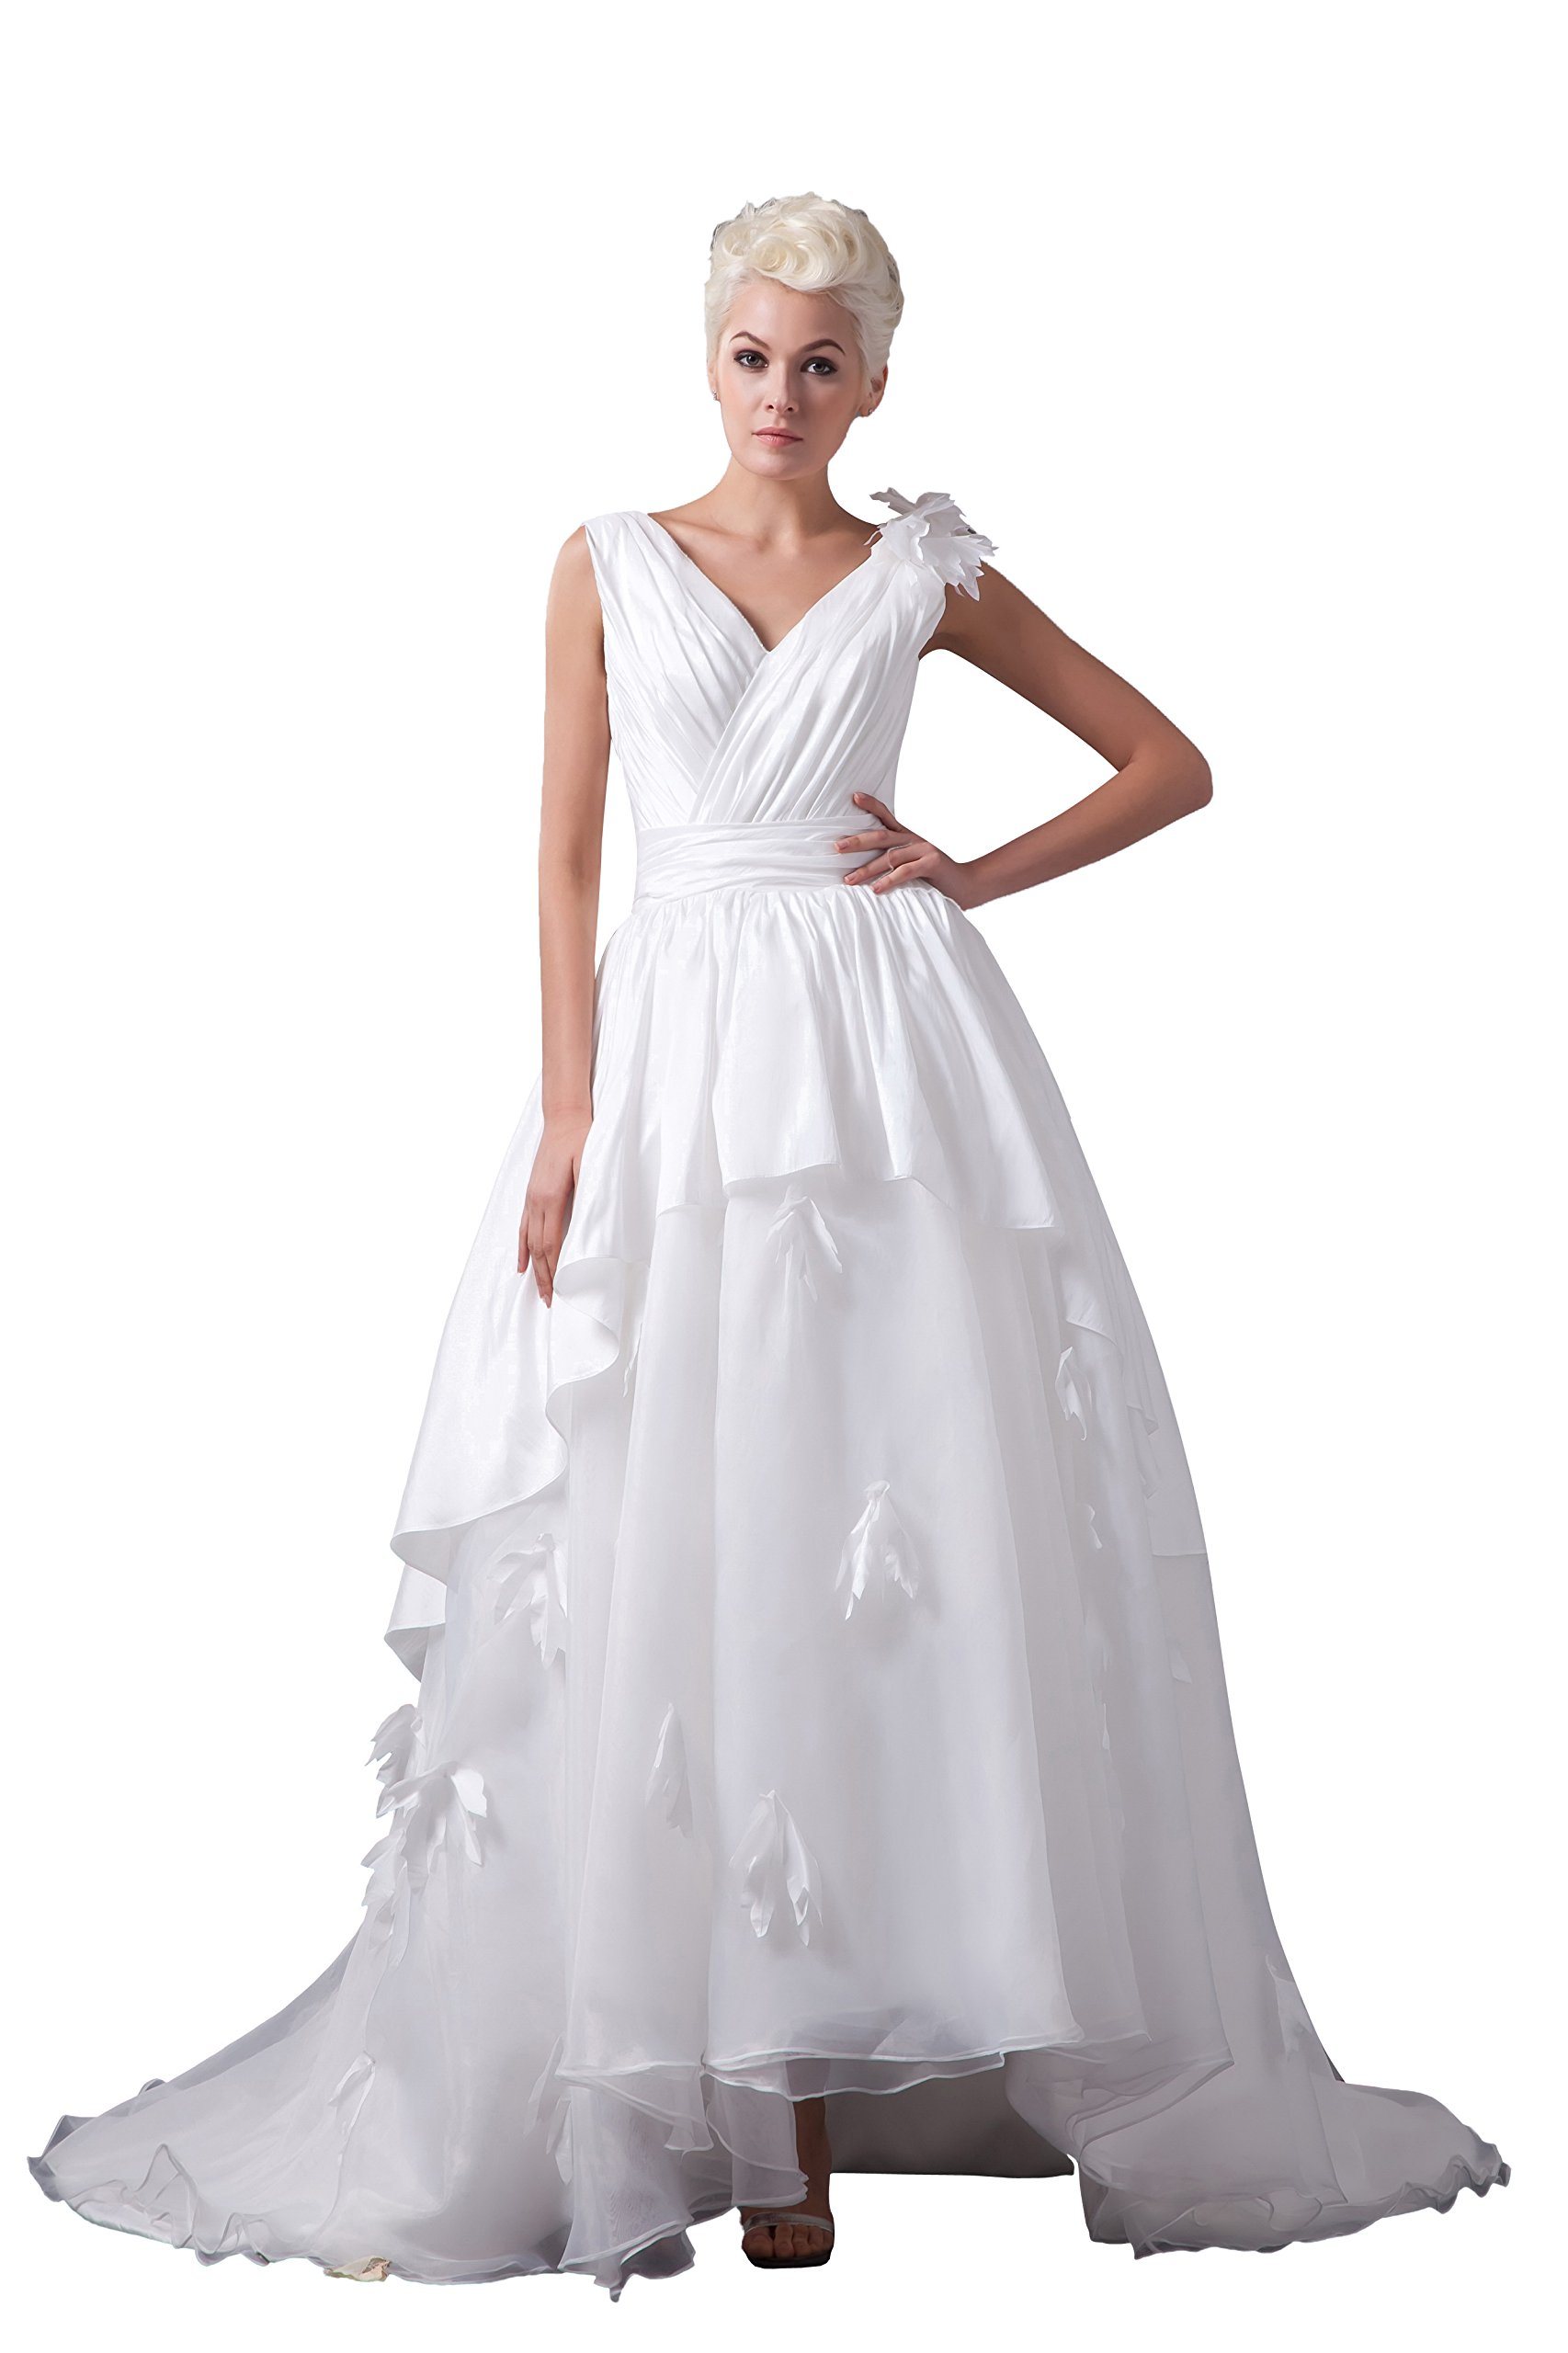 Vogue007 Womens V-neck Sleeveless Taffeta Pongee Satin Wedding Dress, ColorCards, 20W